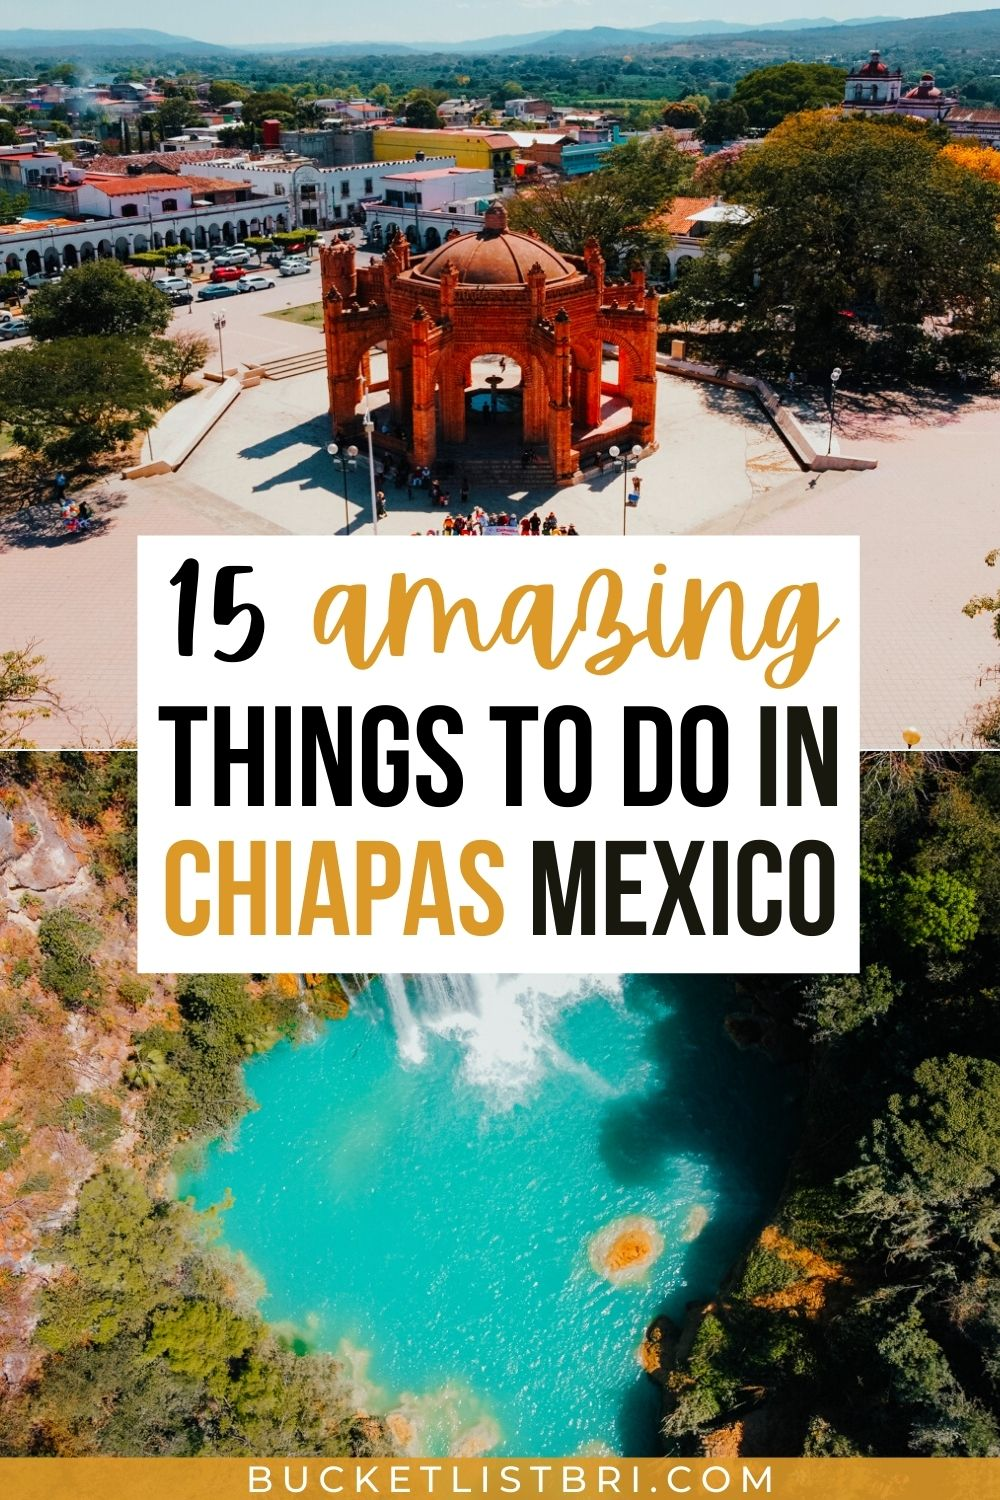 drone photos of chiapa de corzo and el chilfon waterfalls in chiapas, mexico with text overlay